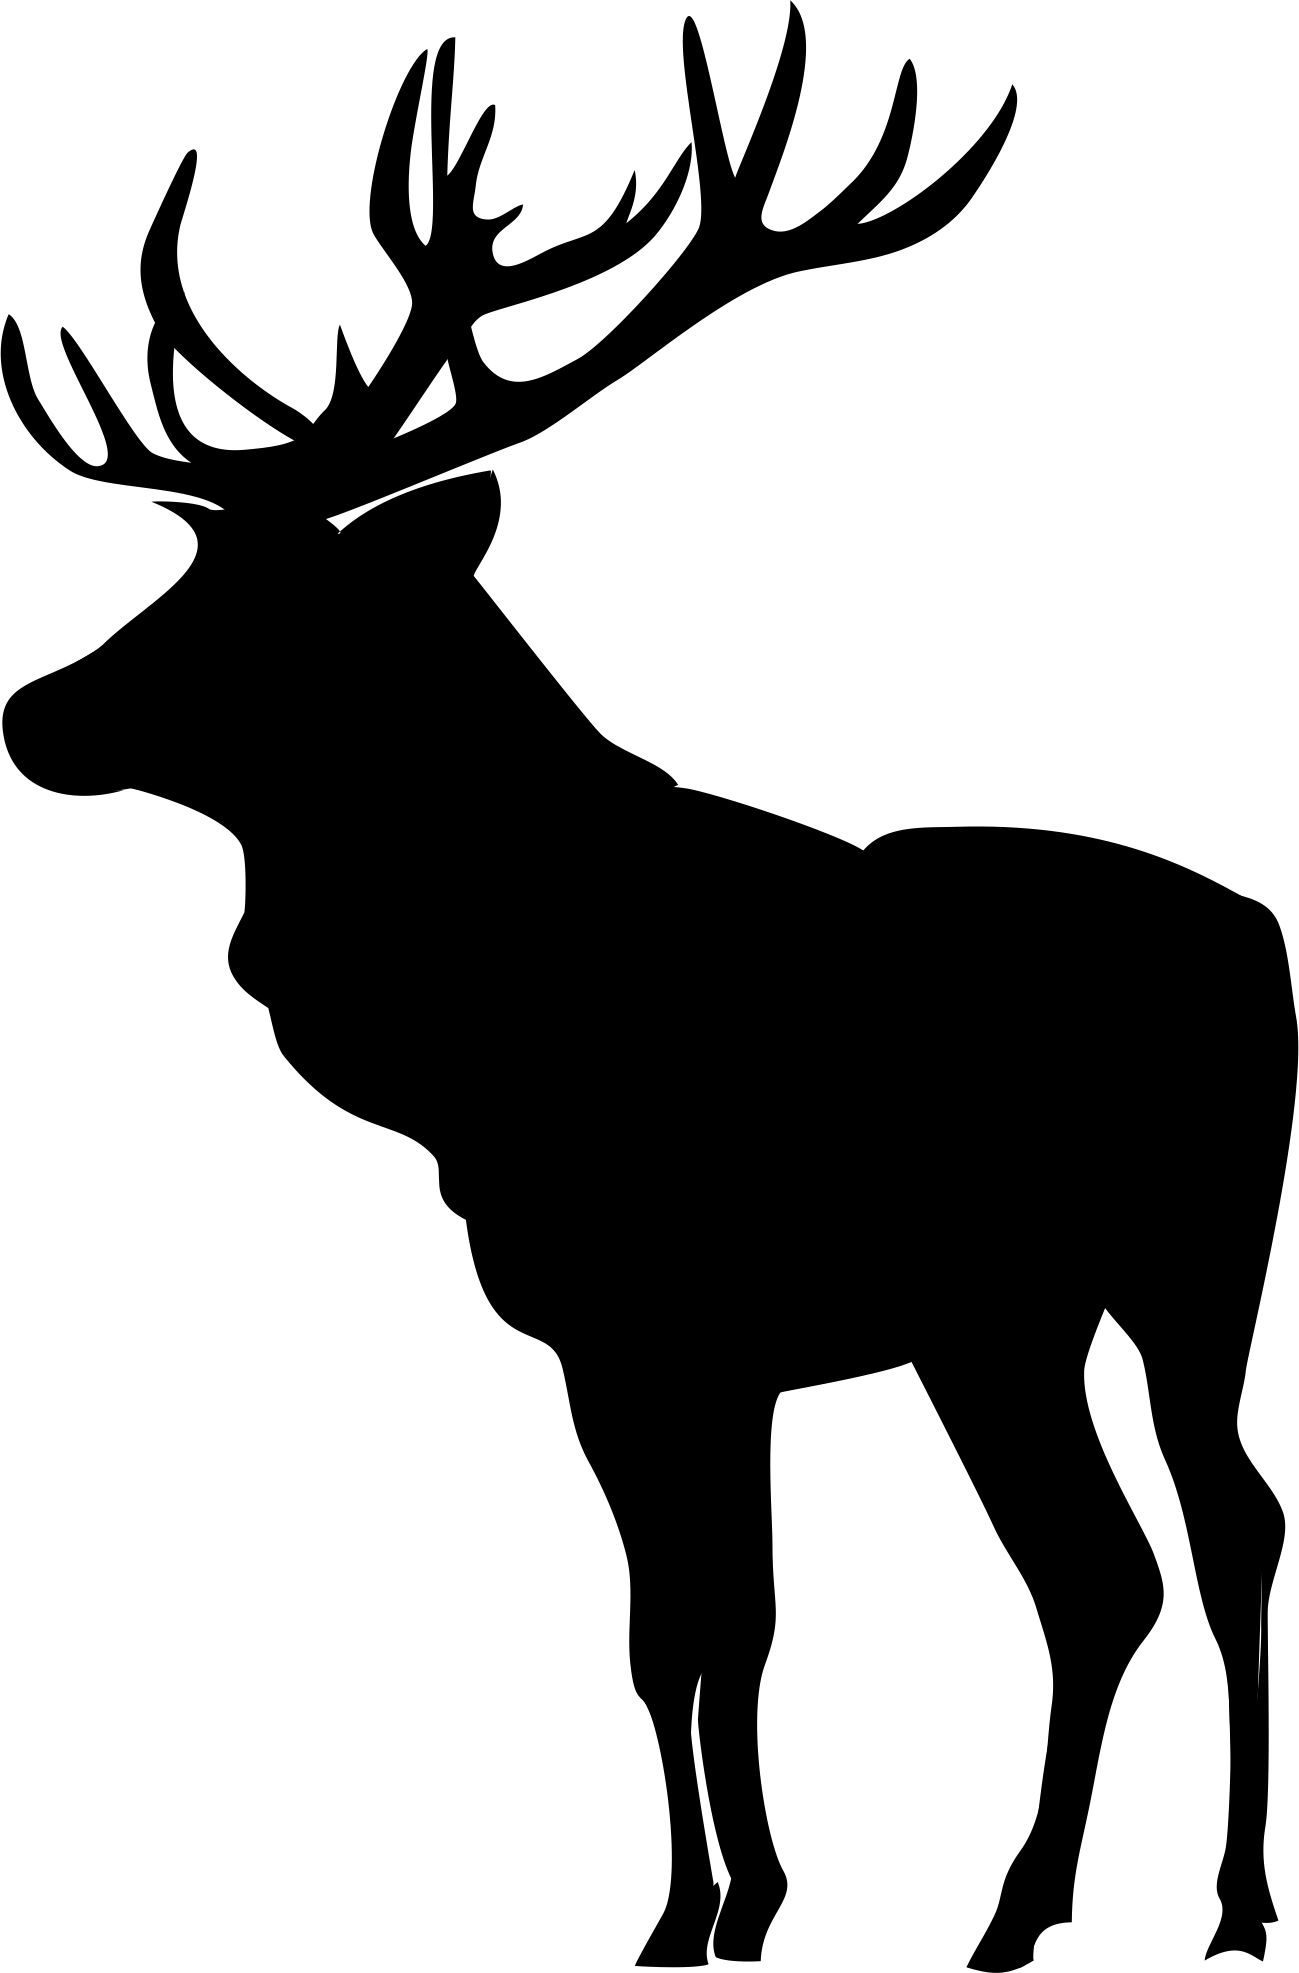 1299x1973 Elk Silhouette 13.png Decals, Stickers, Emblems